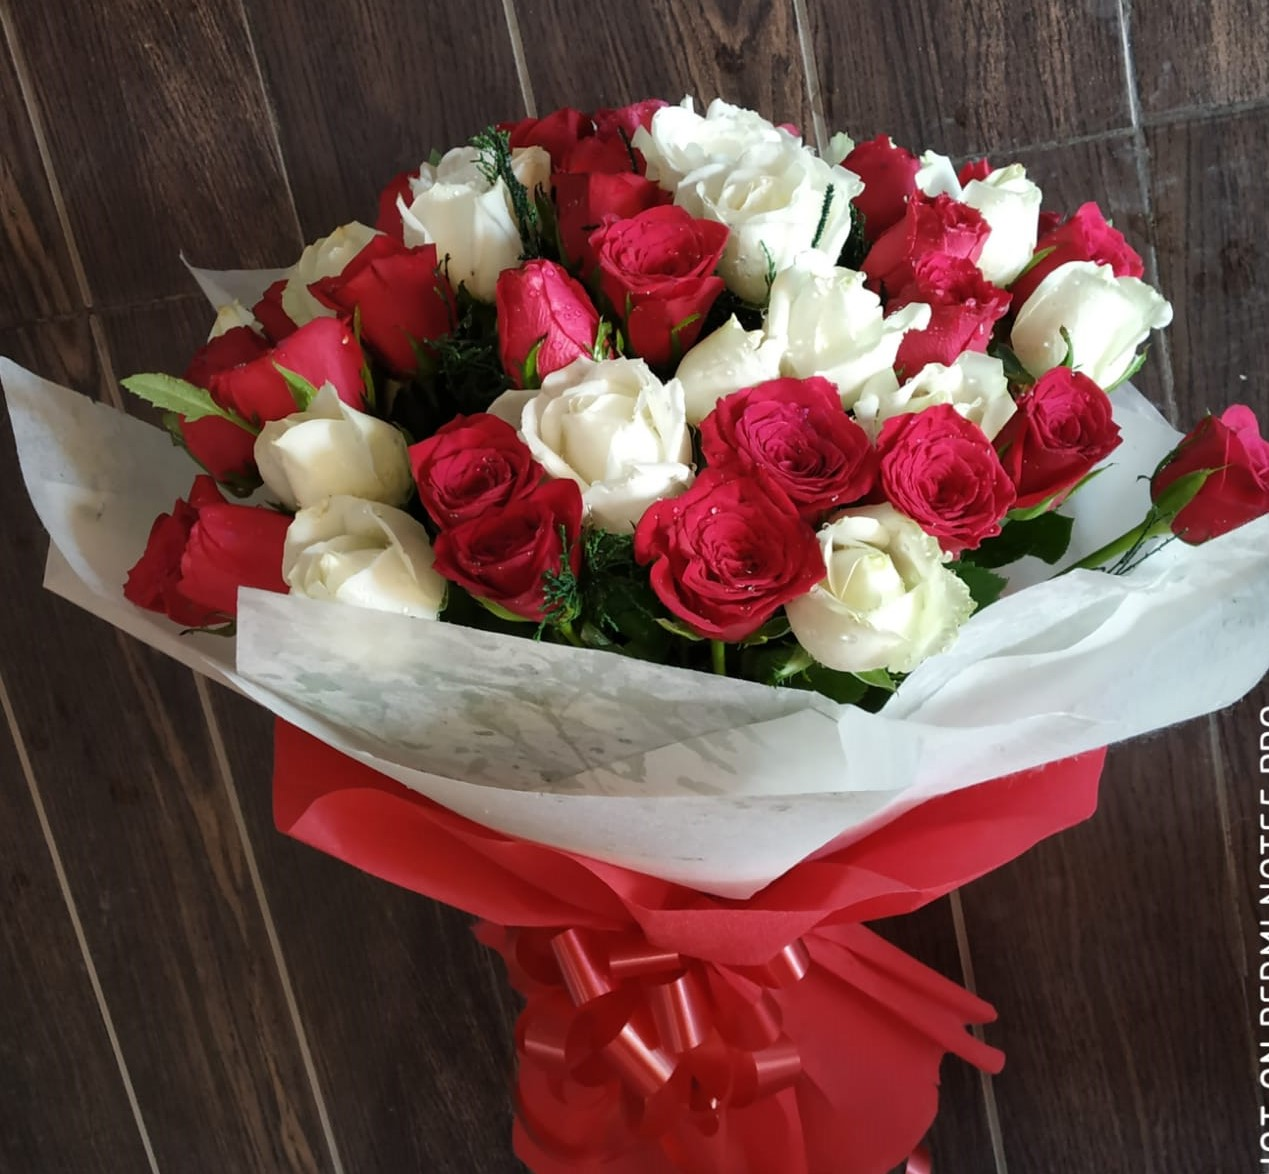 Flowers Delivery in Sector 36 GurgaonRed & White Roses in Duble Layer Packing